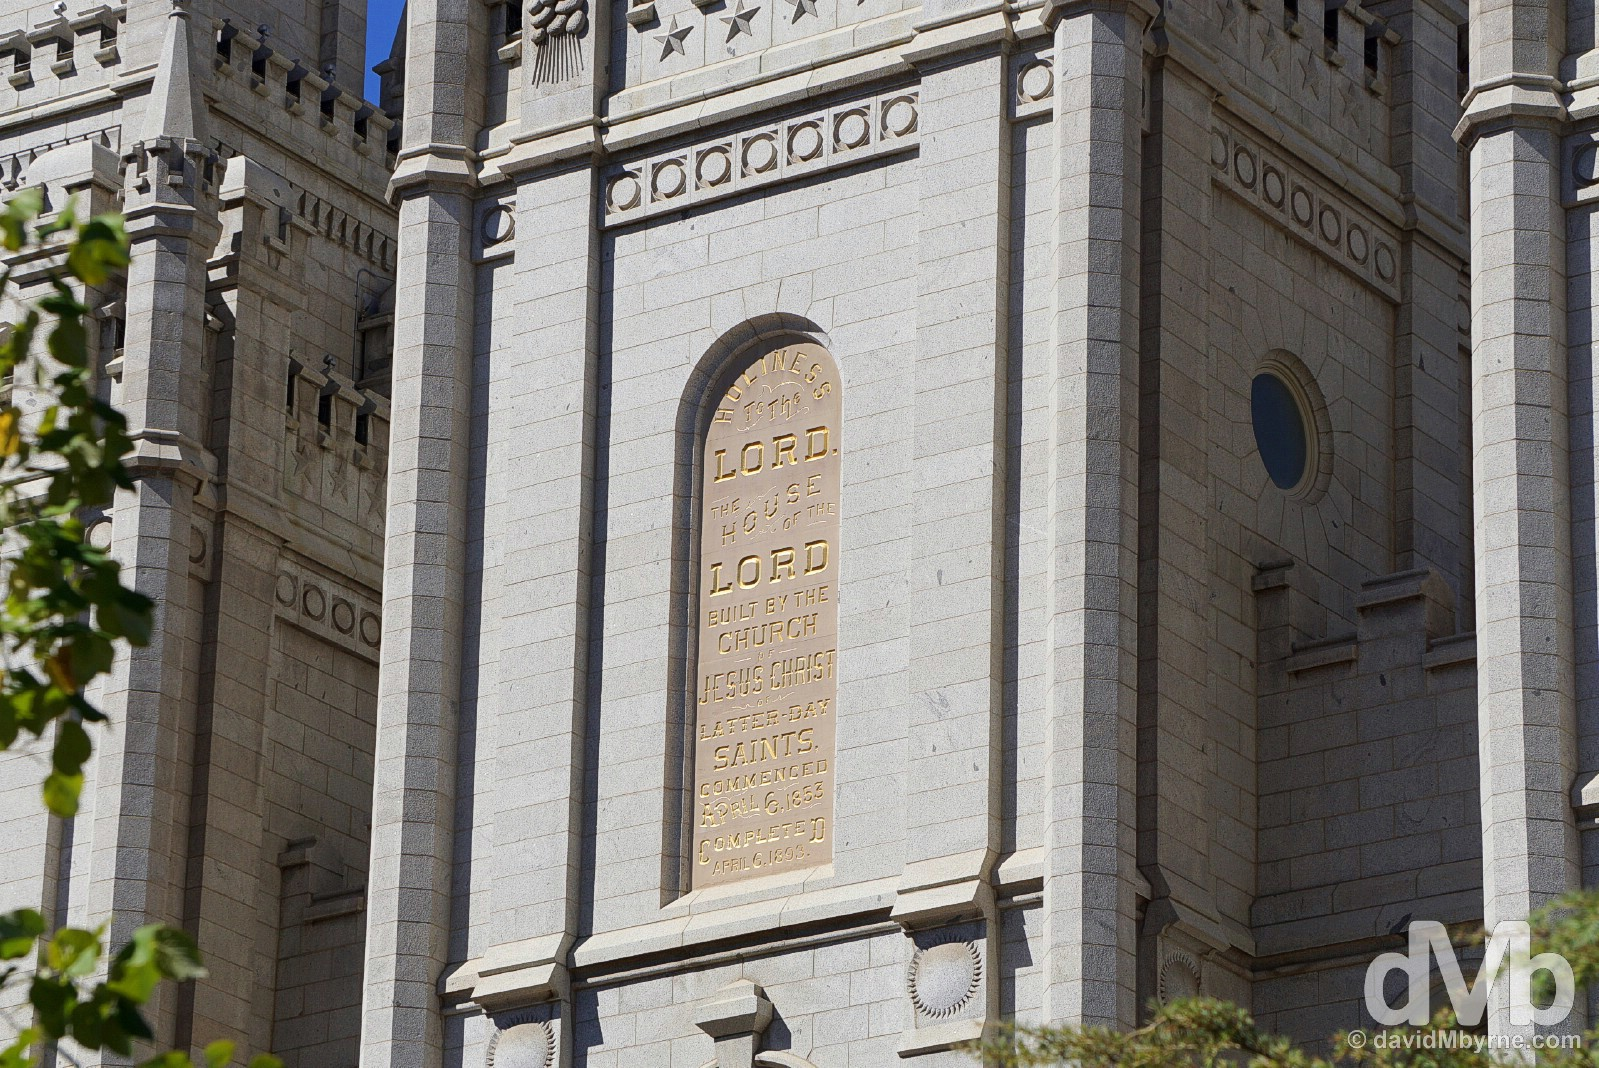 A portion of the facade of the Salt Lake Temple in Temple Square, Salt Lake City, Utah, USA. September 7, 2016.